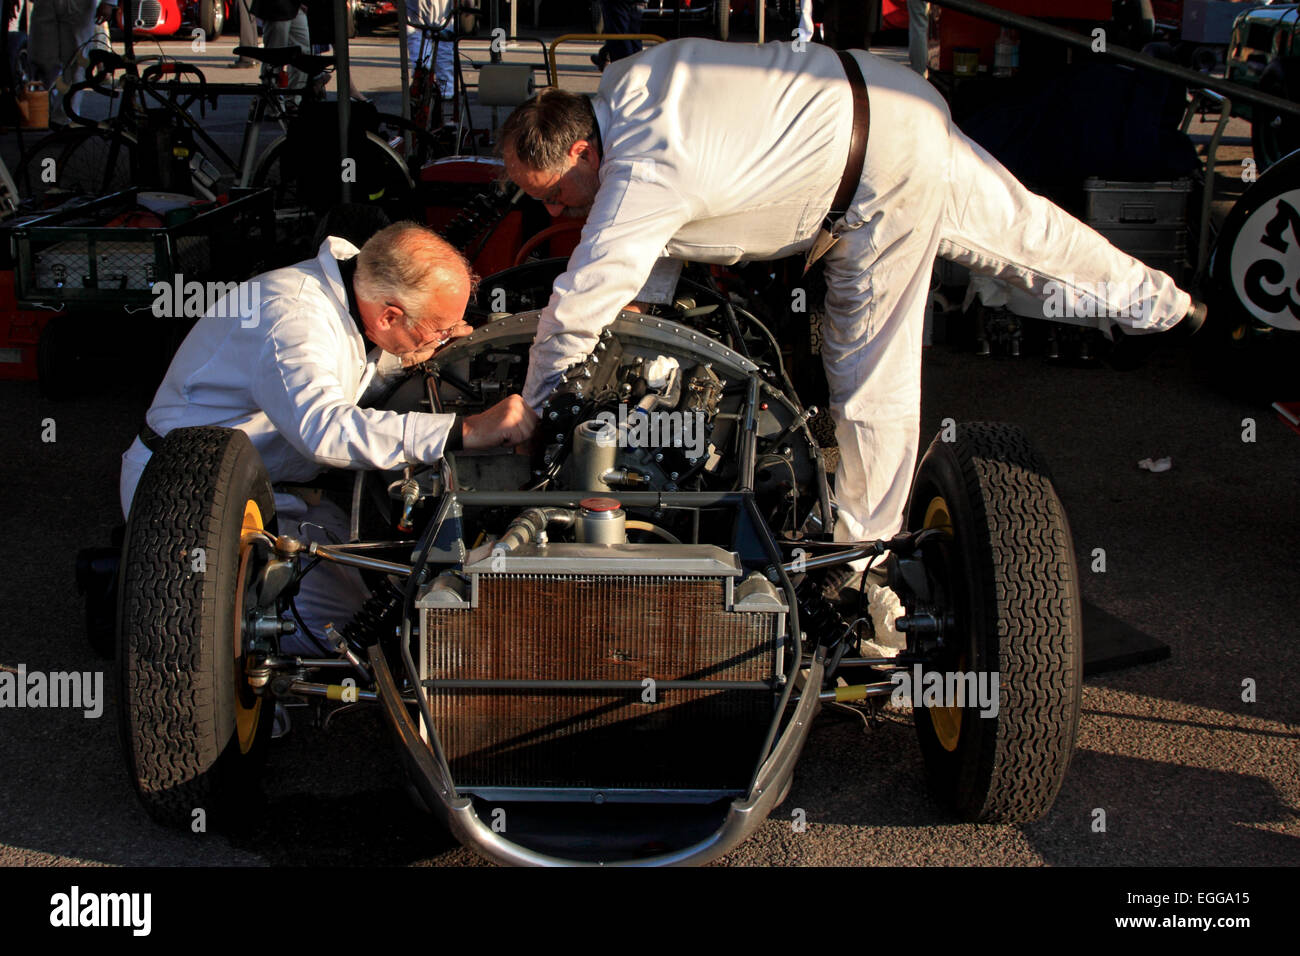 1959 Lotus-Climax 16 having last minute adjustments made in the paddock / Goodwood Revival / Goodwood / UK - Stock Image